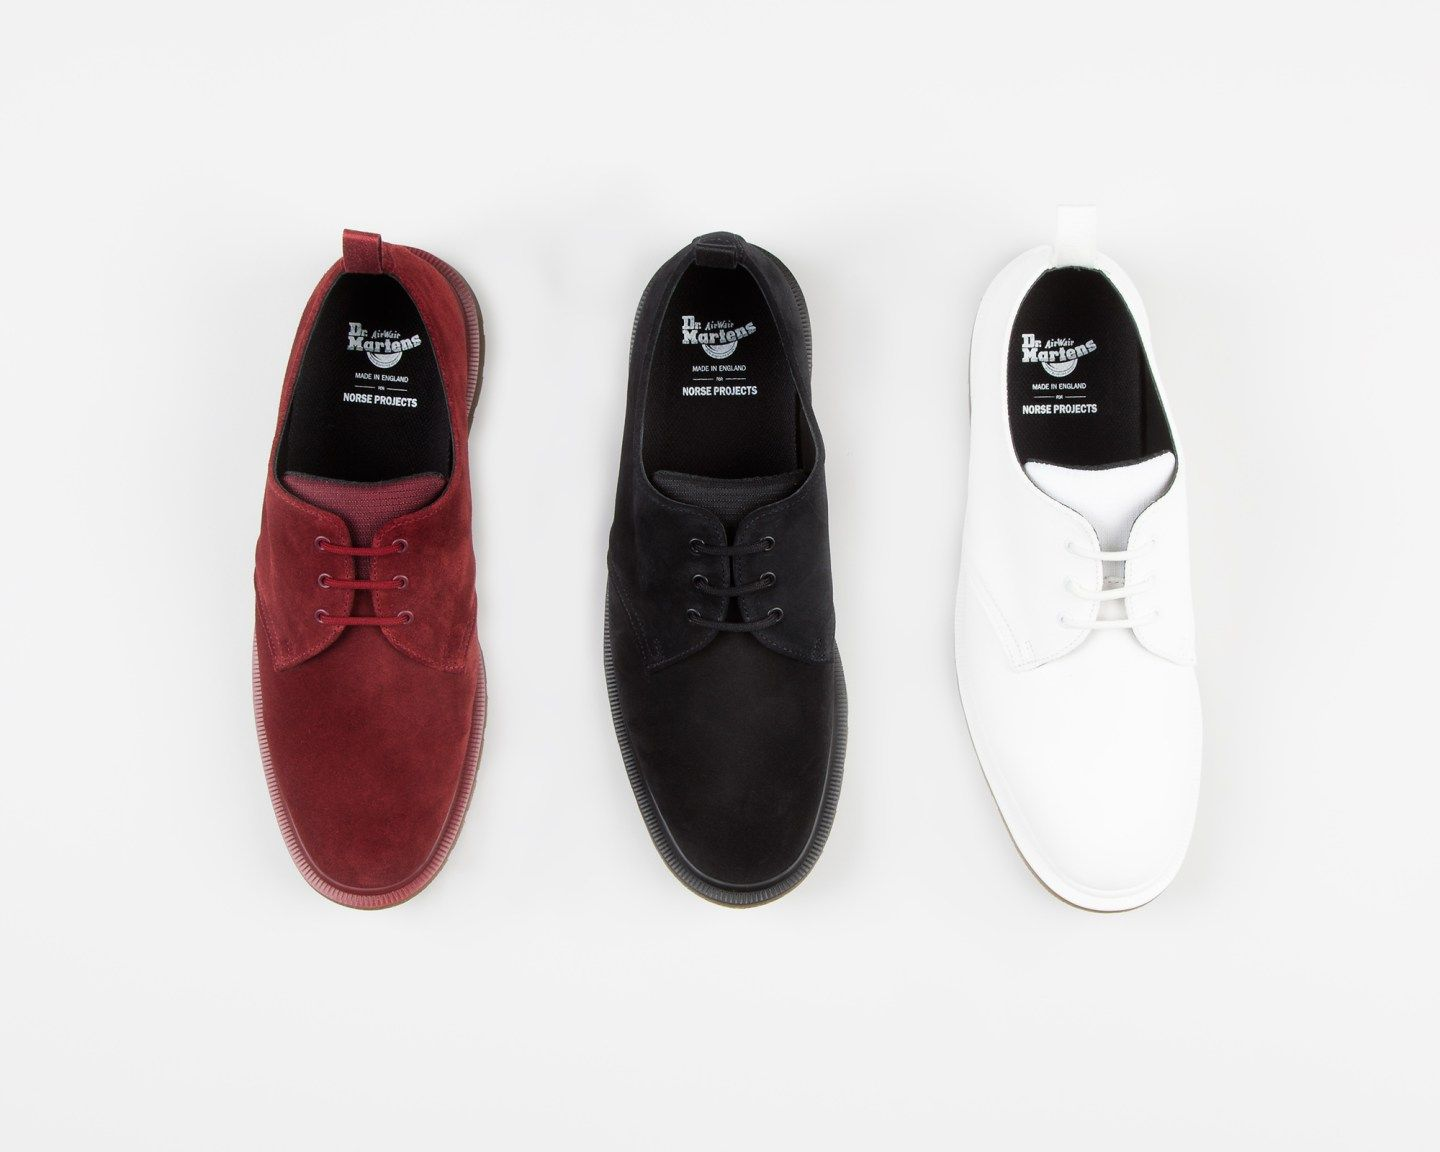 f44514f423d5 Dr. Martens X Norse Projects Collaboration  the re-invented 3-Eye Steed  Shoe